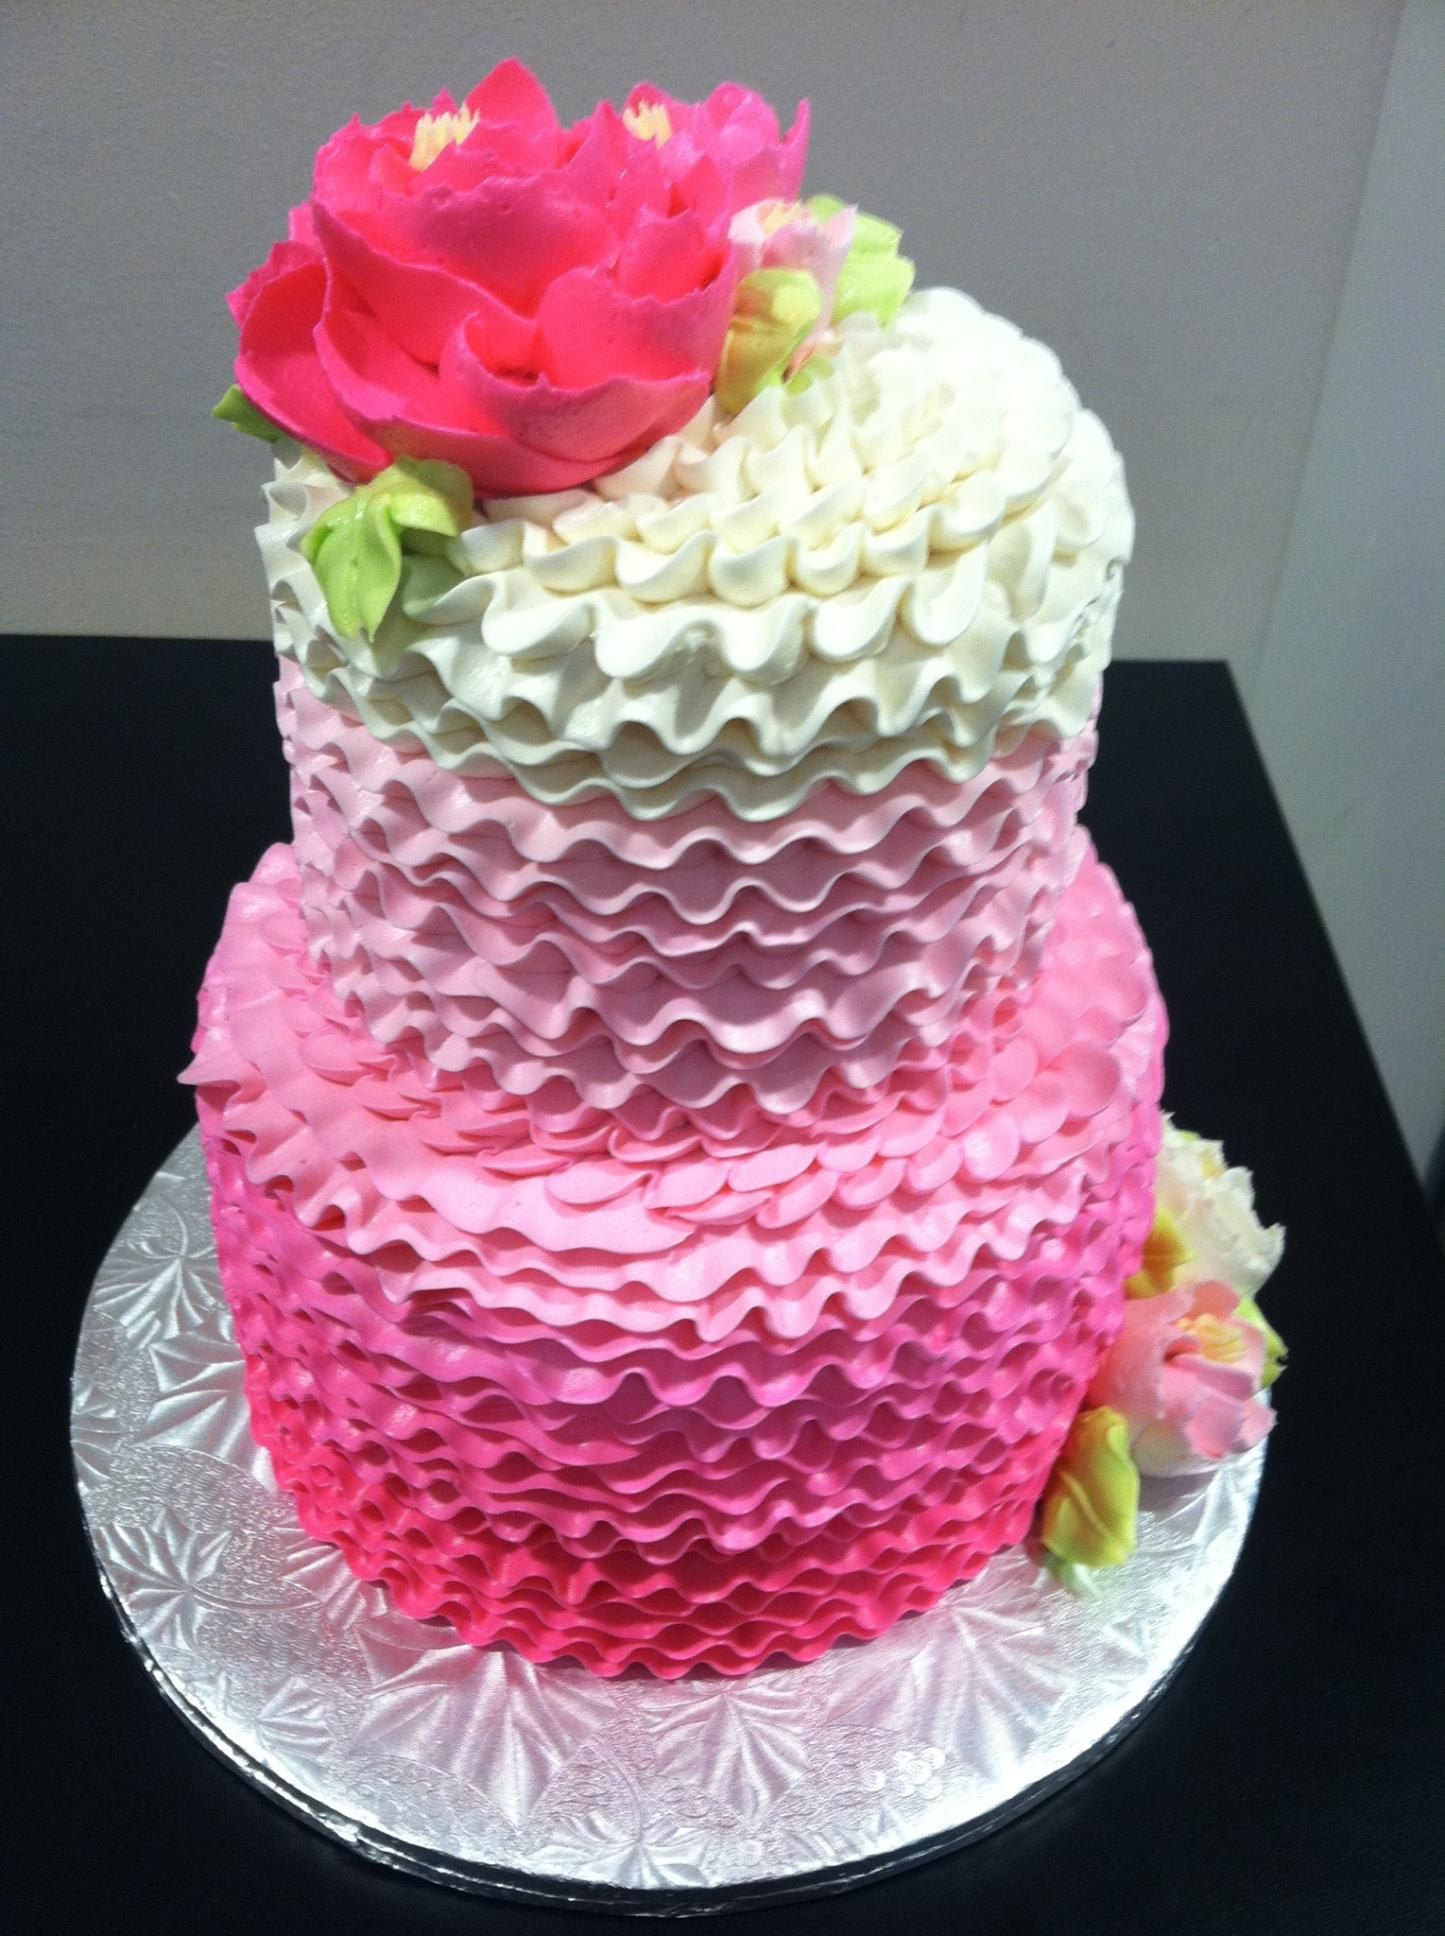 Ombre Ruffle Ercream Cake From The White Flower Pe